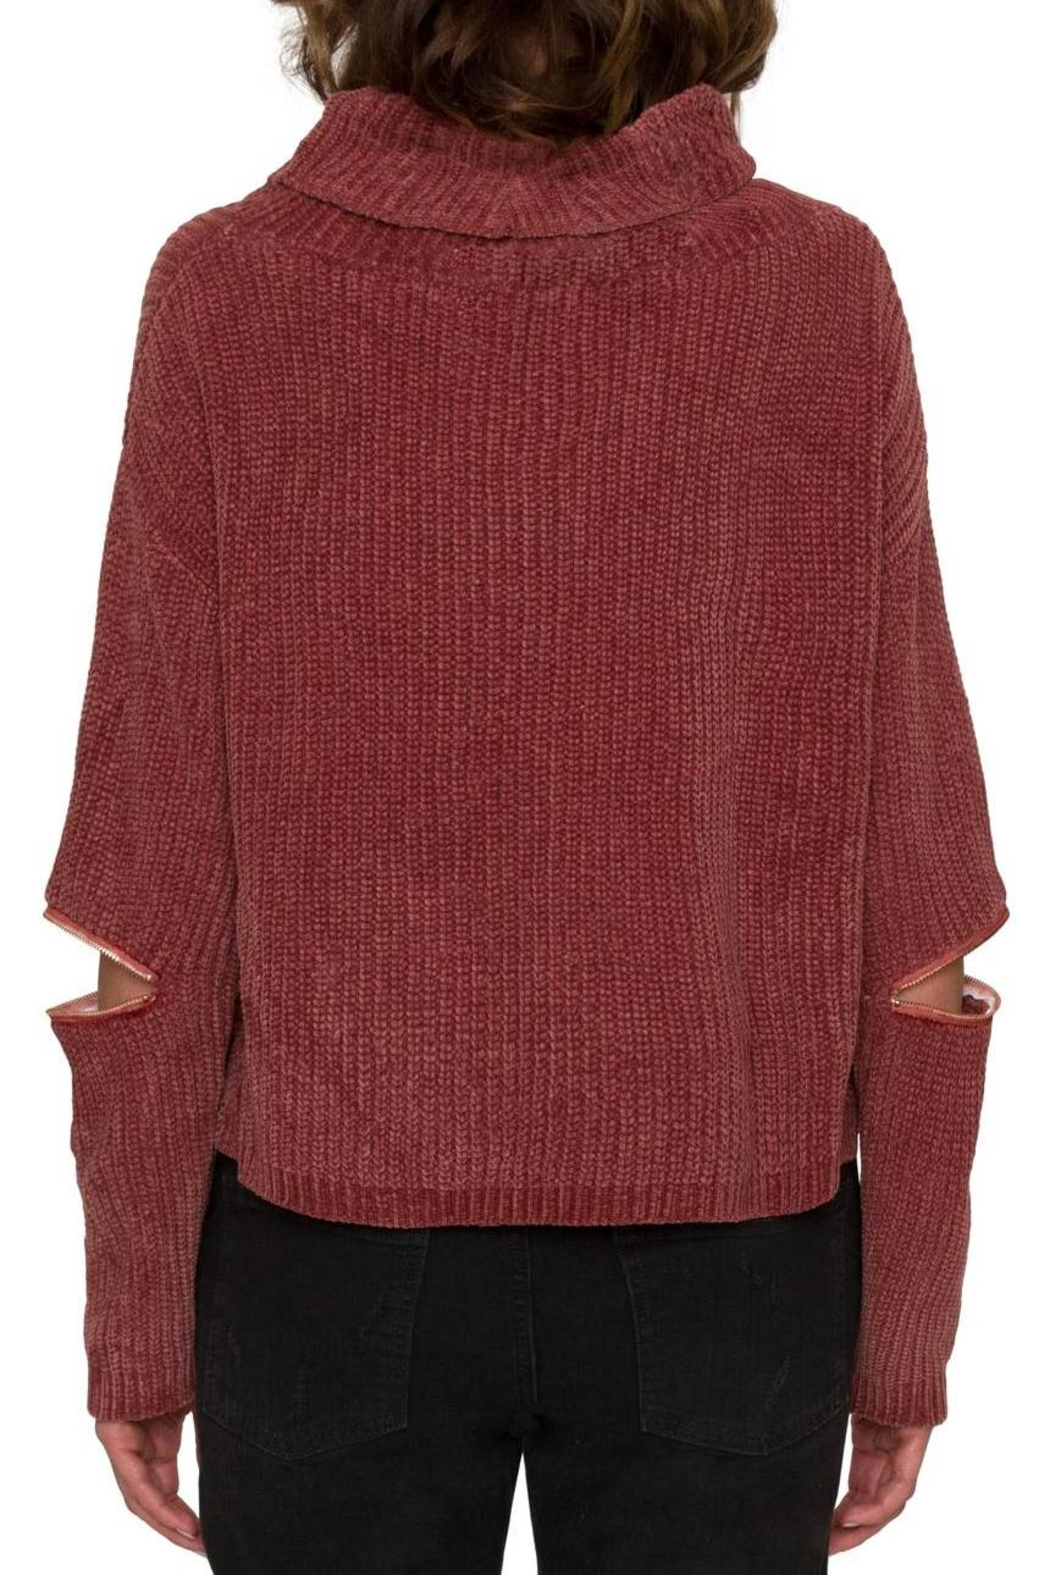 Willow & Clay Zip Sleeve Turtleneck Top - Front Full Image